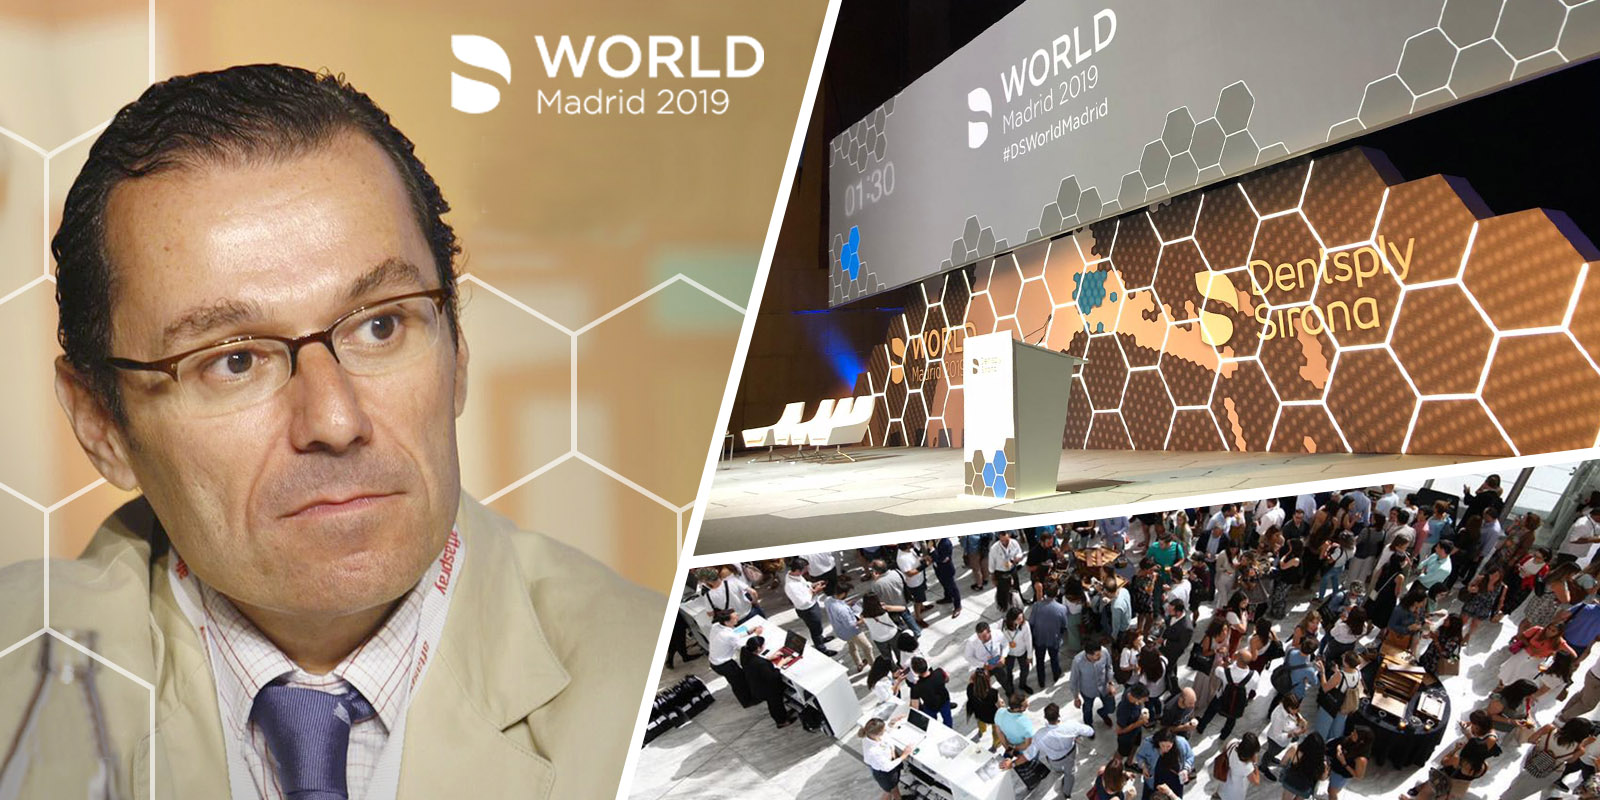 Ponencia del Dr. Enrile en DS World Madrid